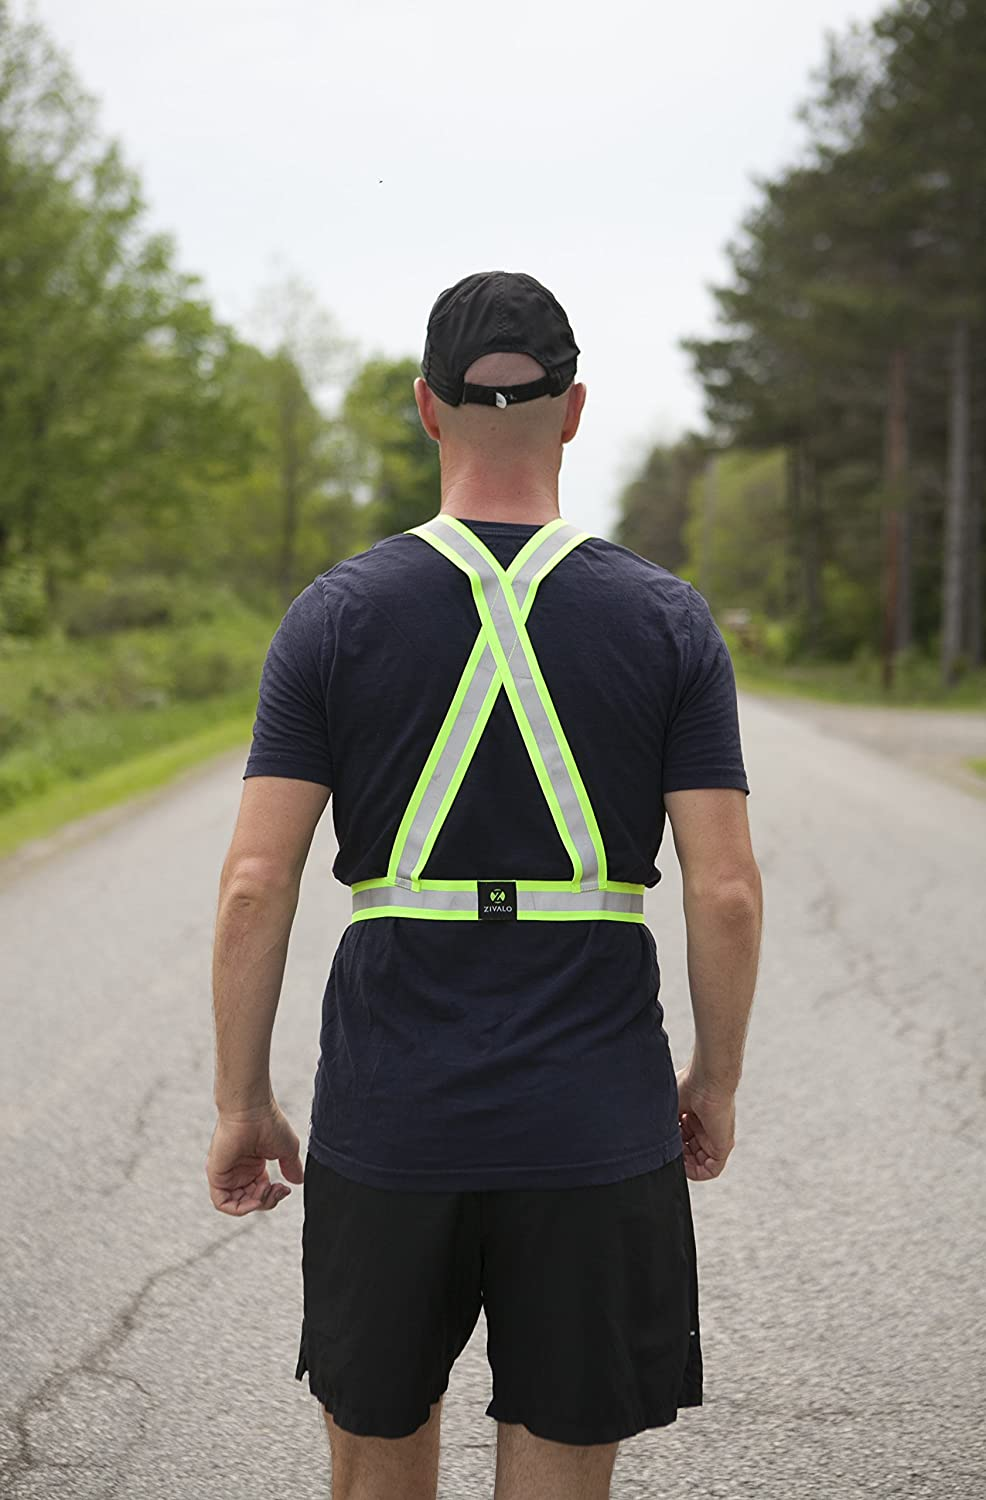 Cycling Elastic Walking and Hiking Lightweight Adjustable and High Visibility of up to 1000 feet Zivalo 3M Scotchlite Reflective Vest for Outside Sports Such as Running